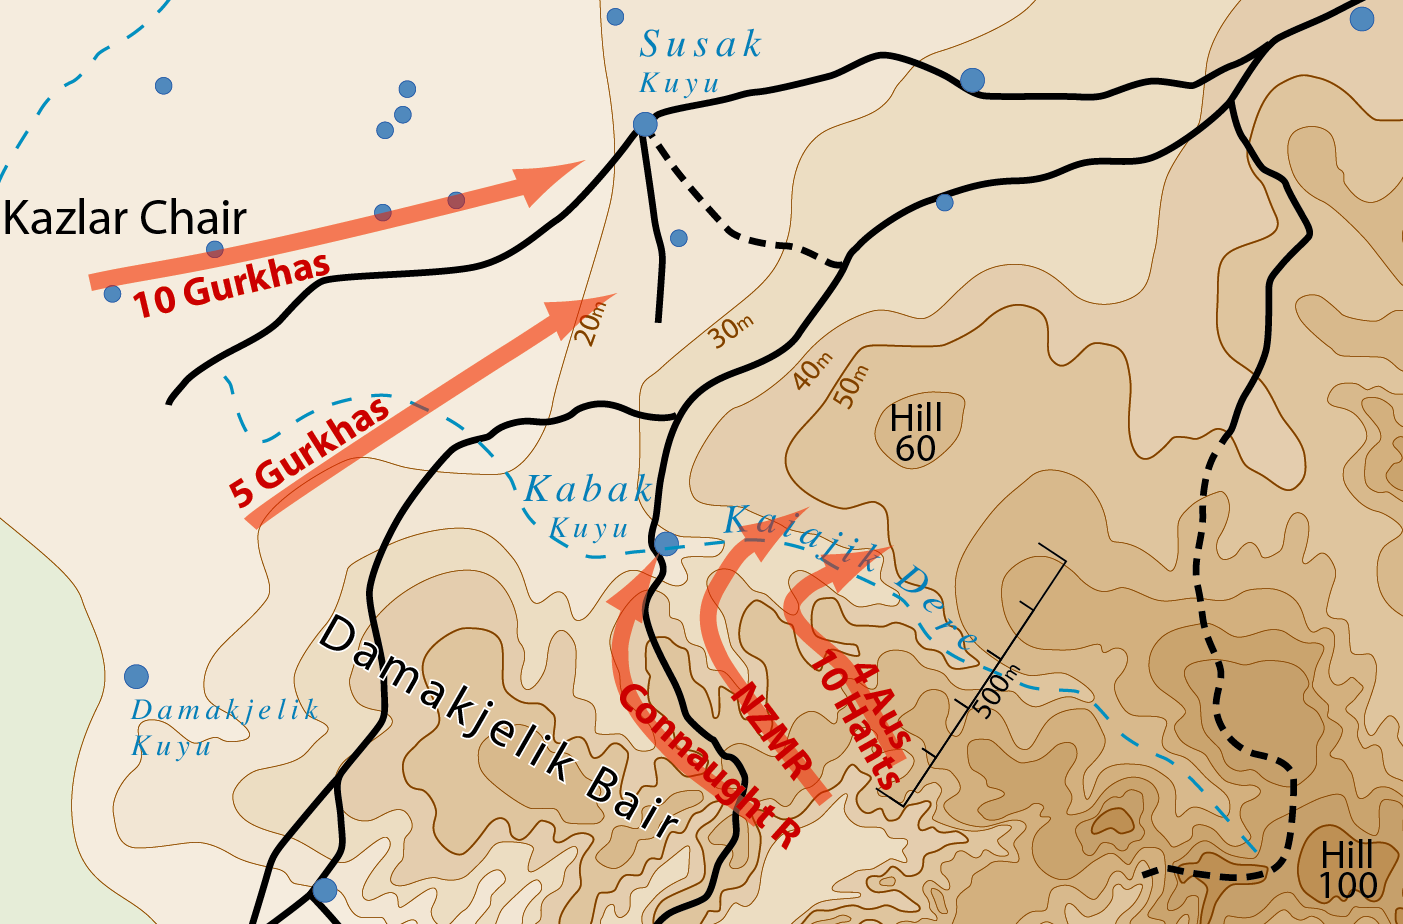 Battle of hill 60 gallipoli wikipedia starting positions and projected advance for 21 august 1915 gumiabroncs Image collections